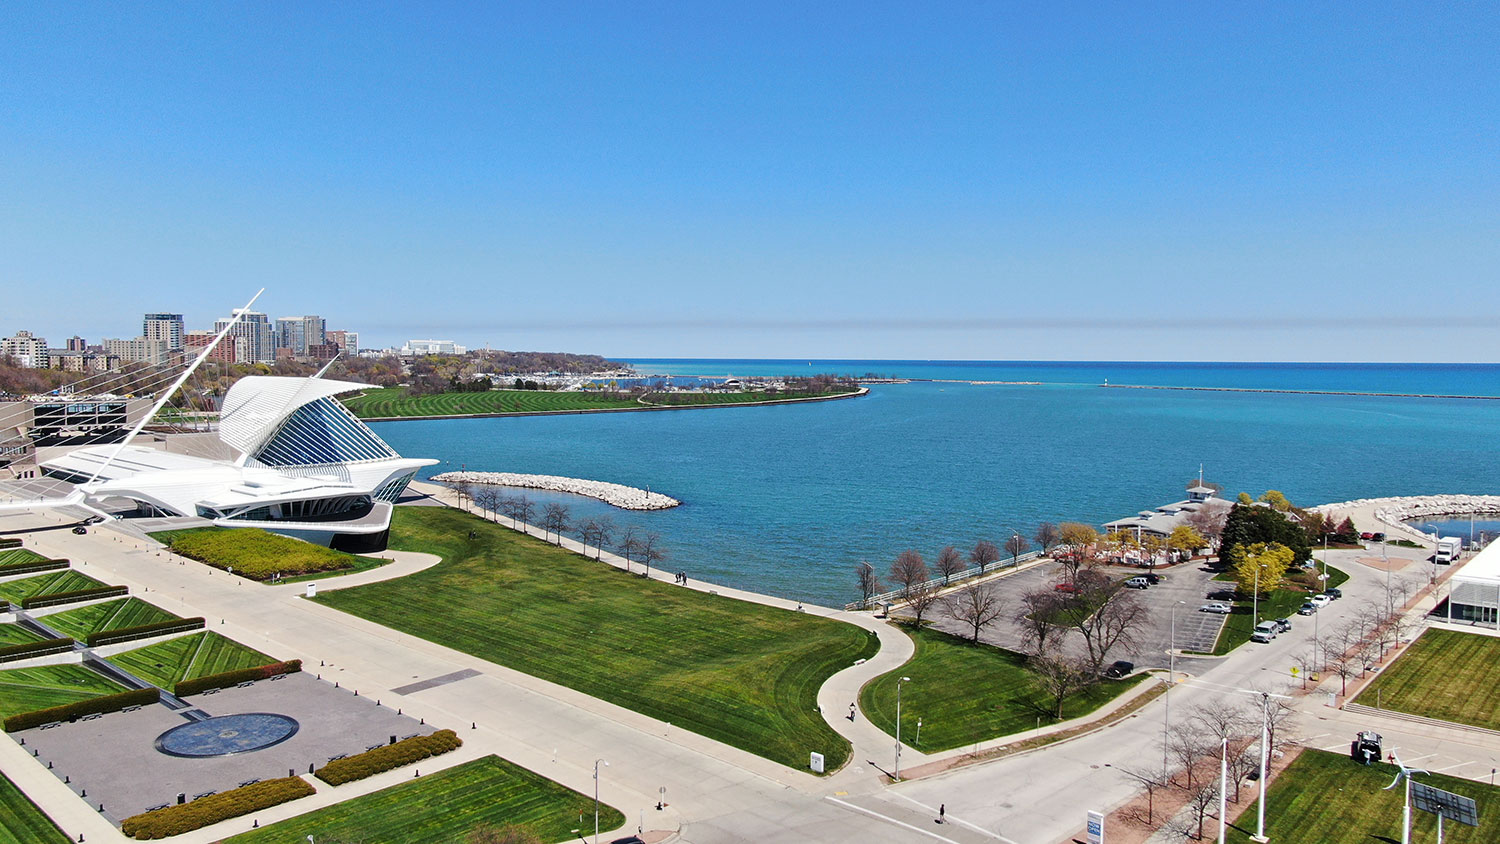 Drone pilots in wisconsin,Green Bay, Door County, Madison, Milwaukee,Wausau,Northwoods drone pilots,FAA licensed pilots,remote pic,pilot in command